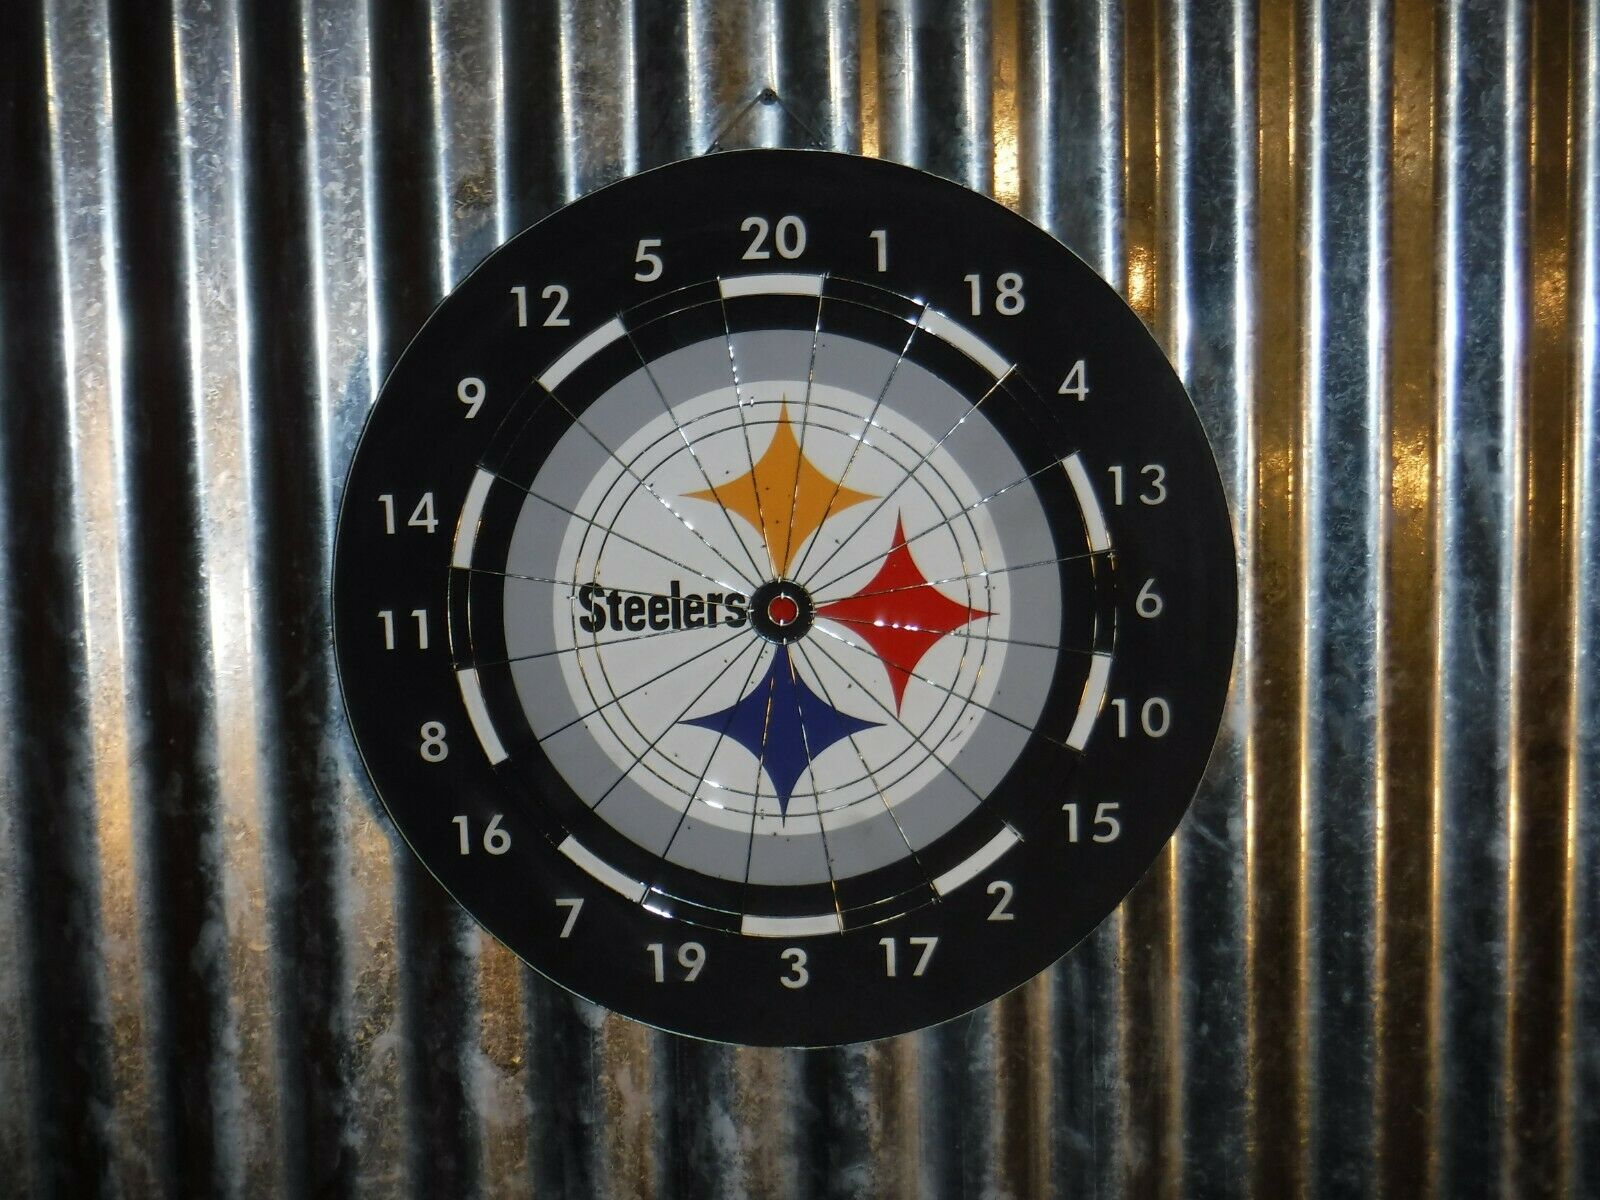 Pittsburgh STEELERS Football Darts Game Reversible Dart Board Excellent Condit